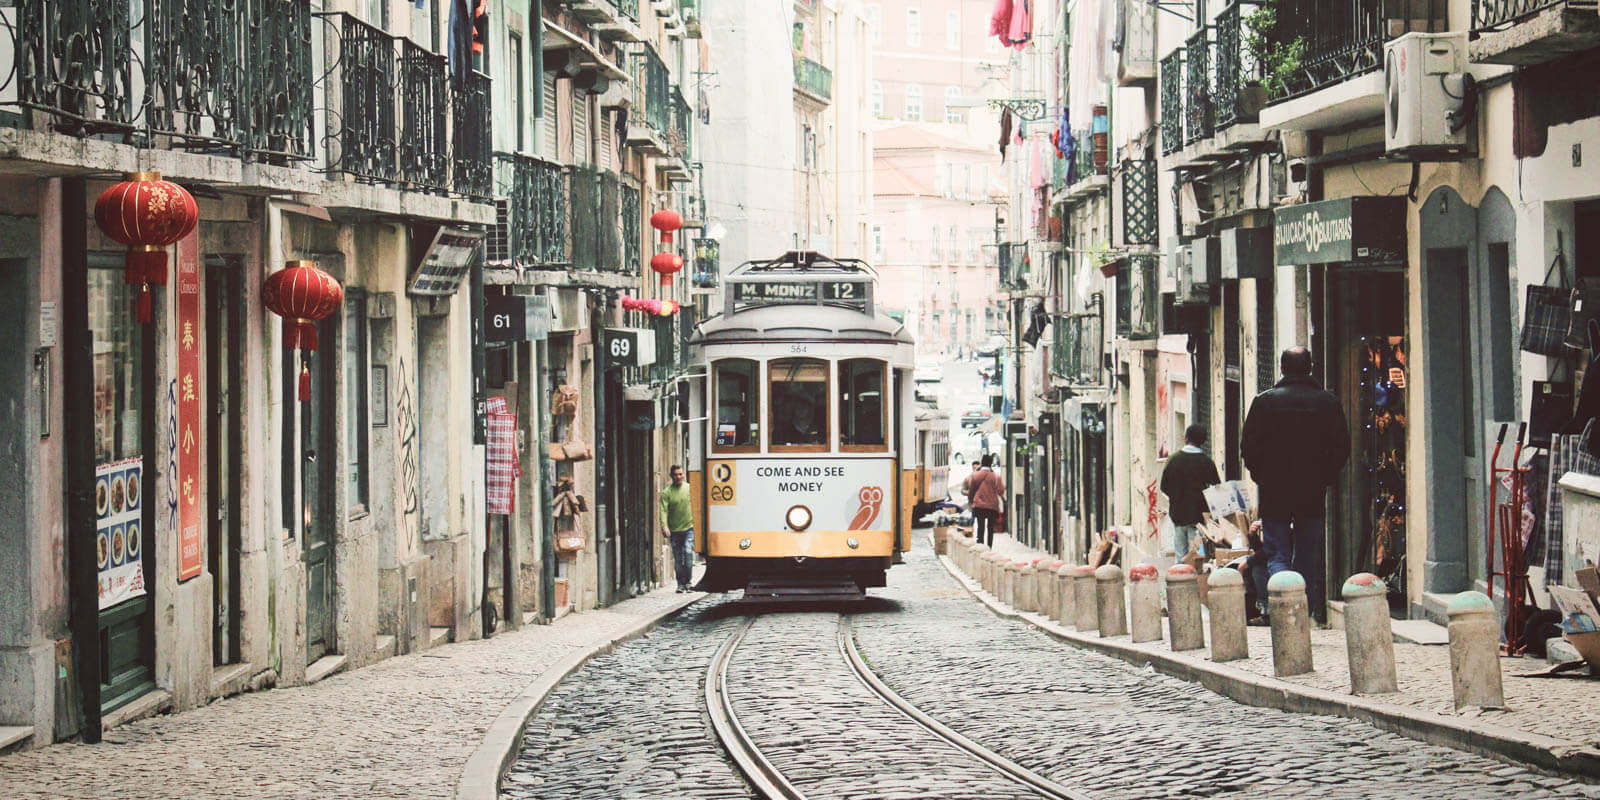 Tourism in Portugal: how the country has reinvented itself